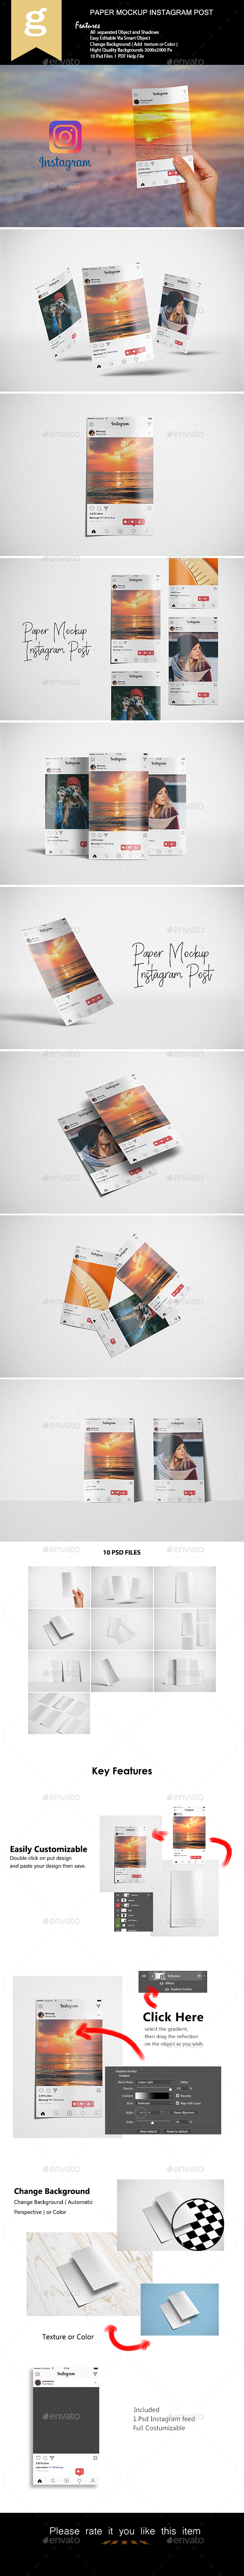 Paper Mockup for Instagram Post - Miscellaneous Print